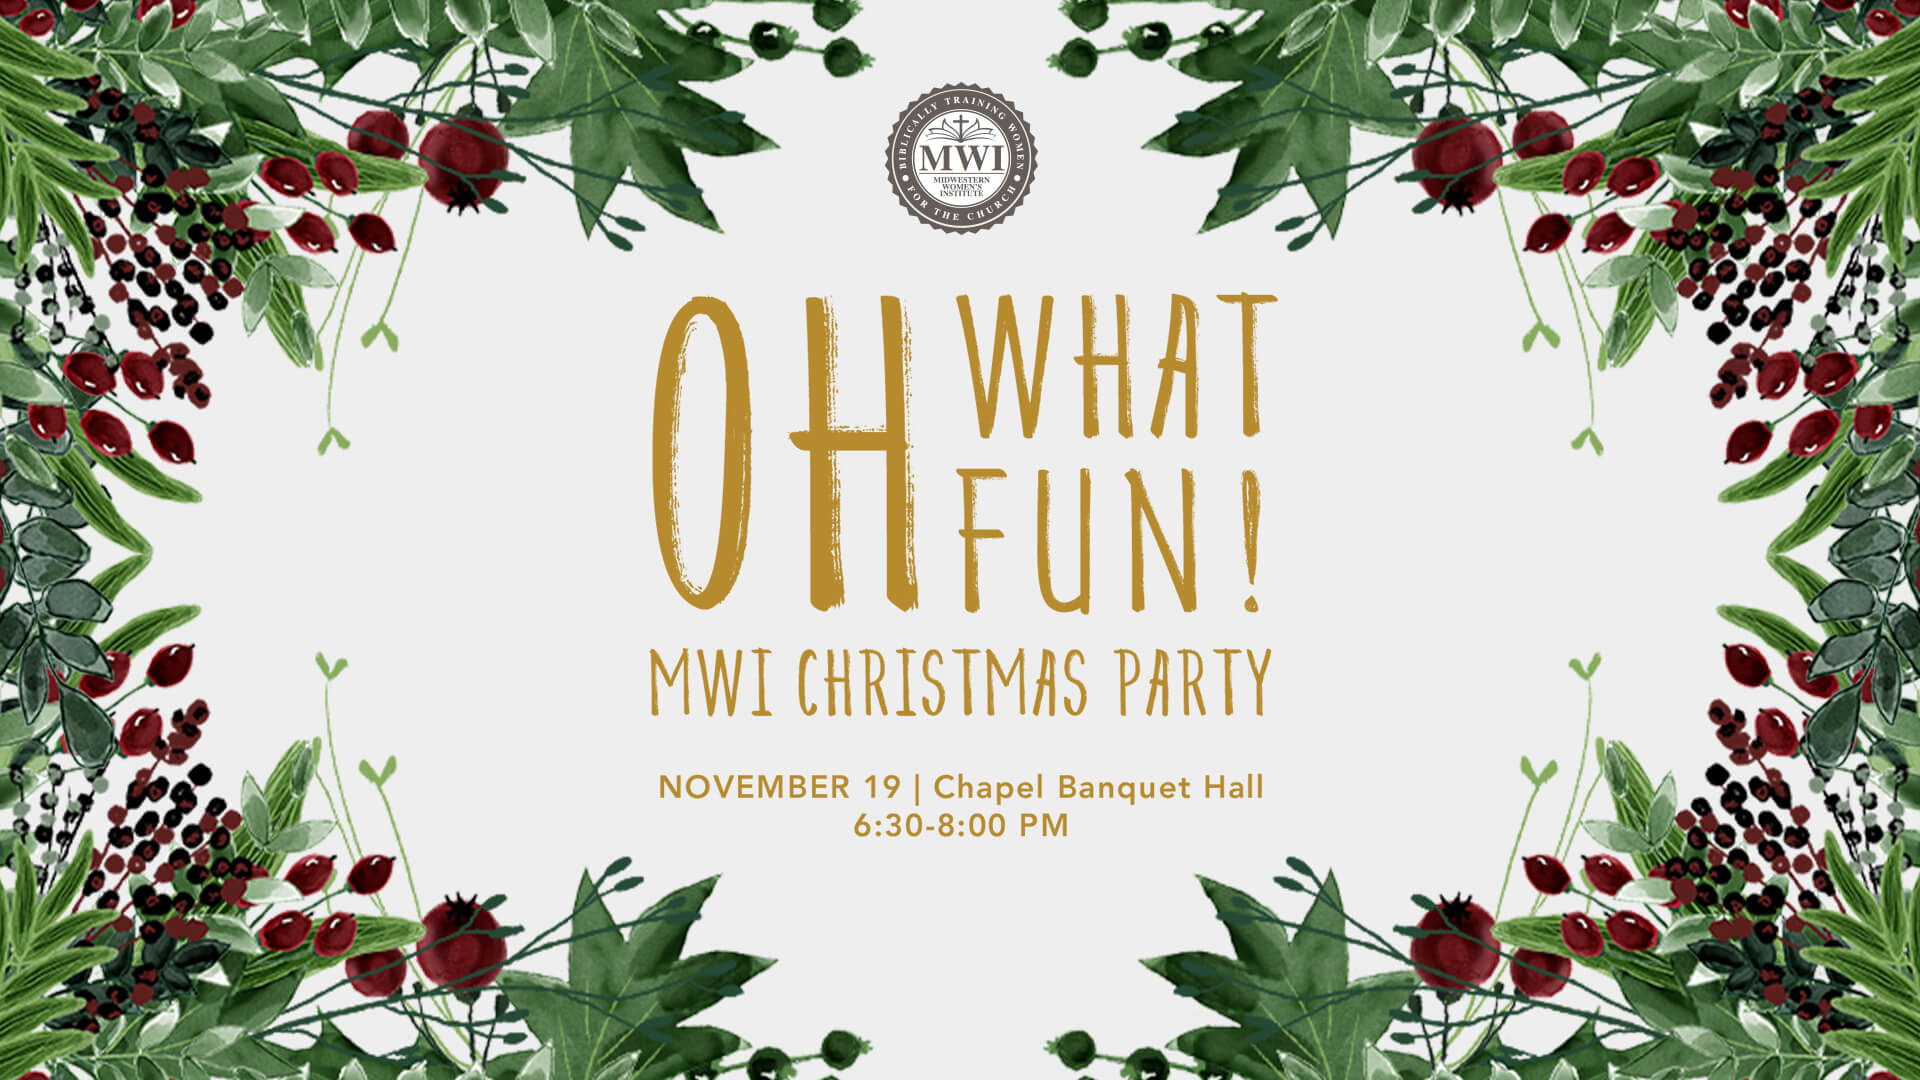 MWI Christmas Party Nov 19